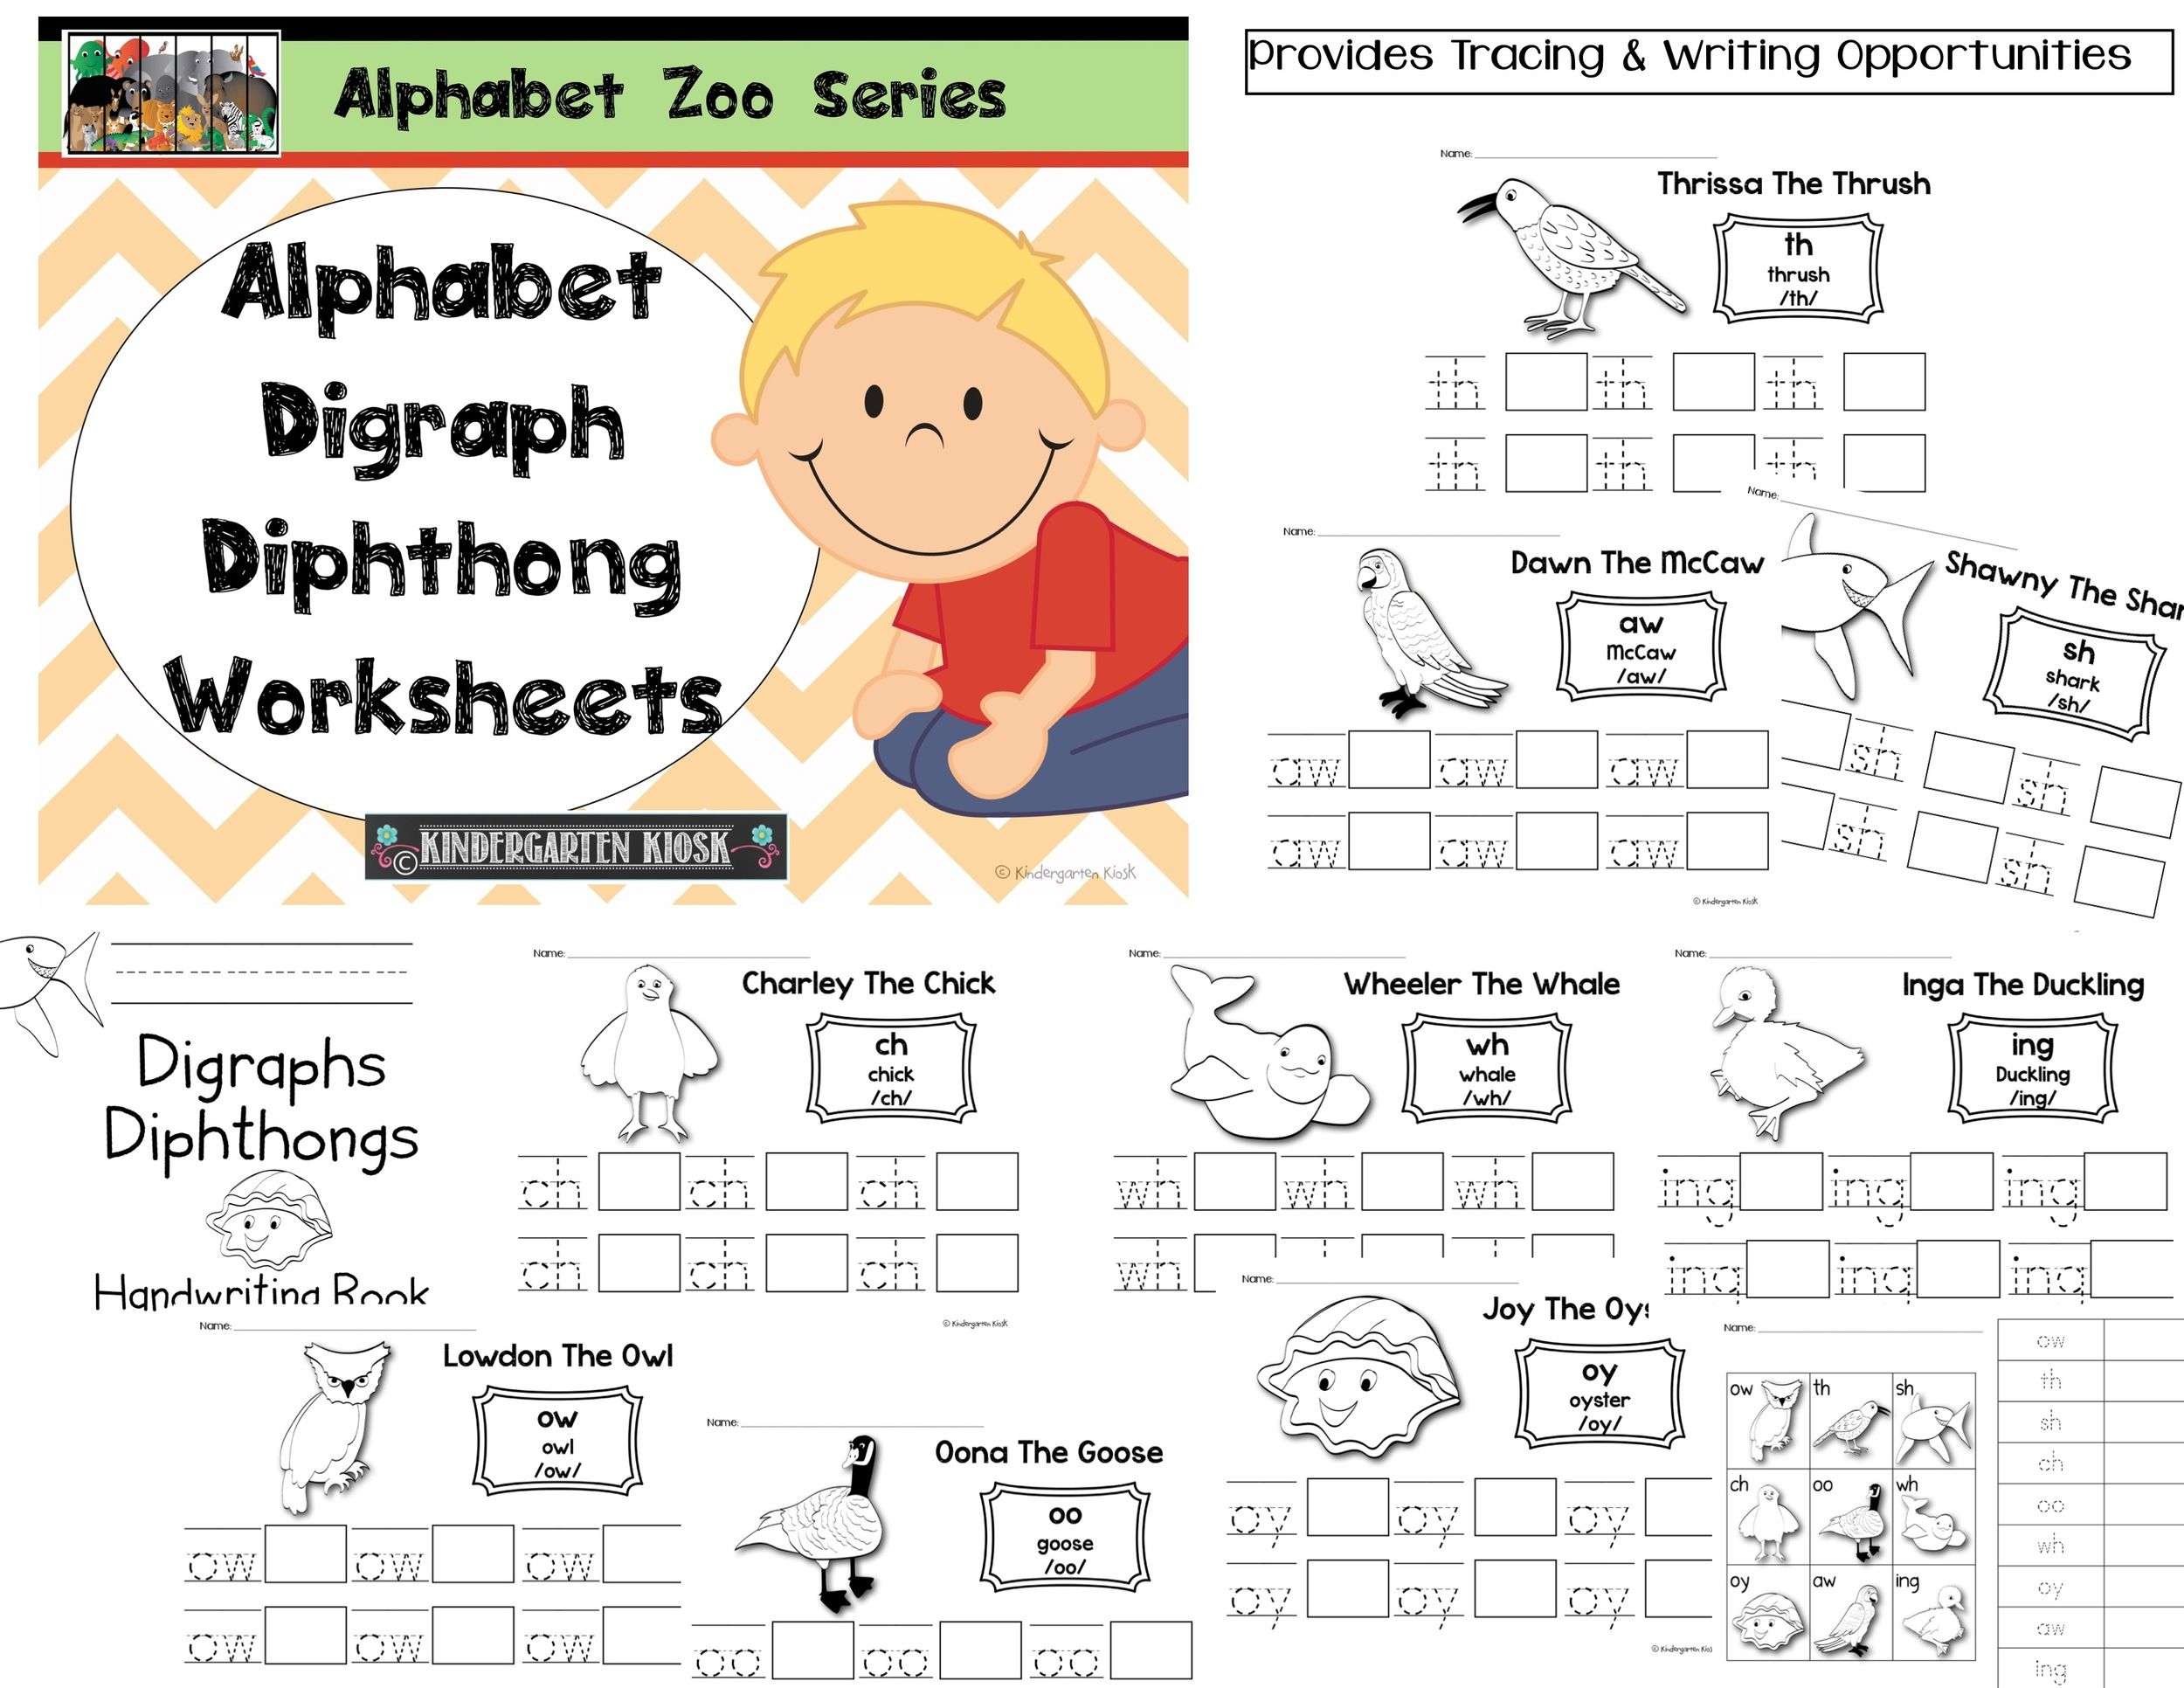 worksheet Diphthong Worksheets teaching the alphabet through connections handwriting worksheets zoo digraphdiphthong worksheets